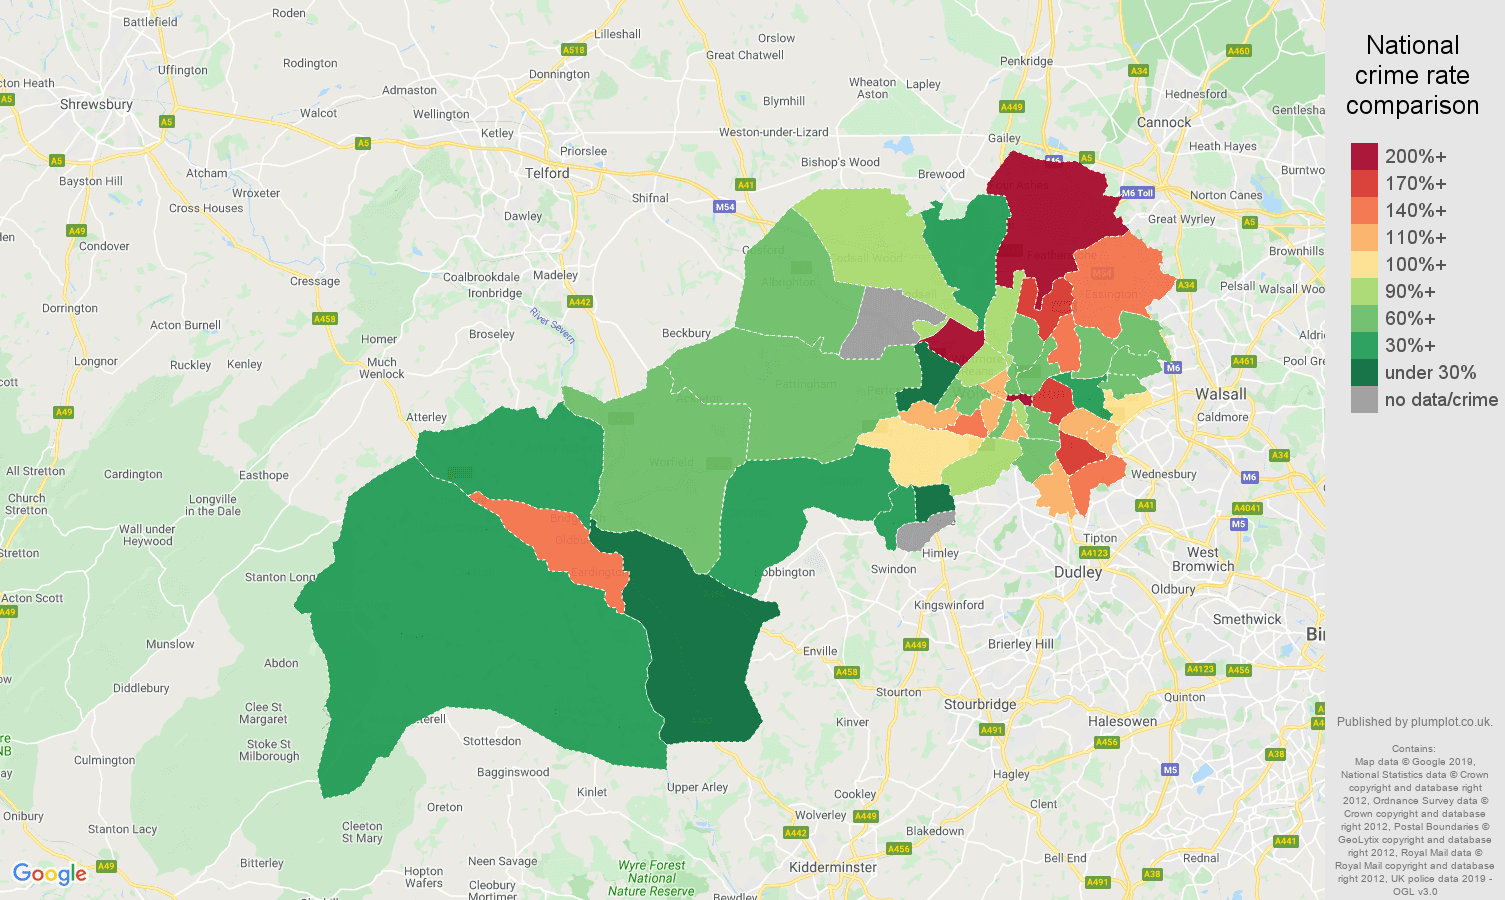 Wolverhampton other crime rate comparison map